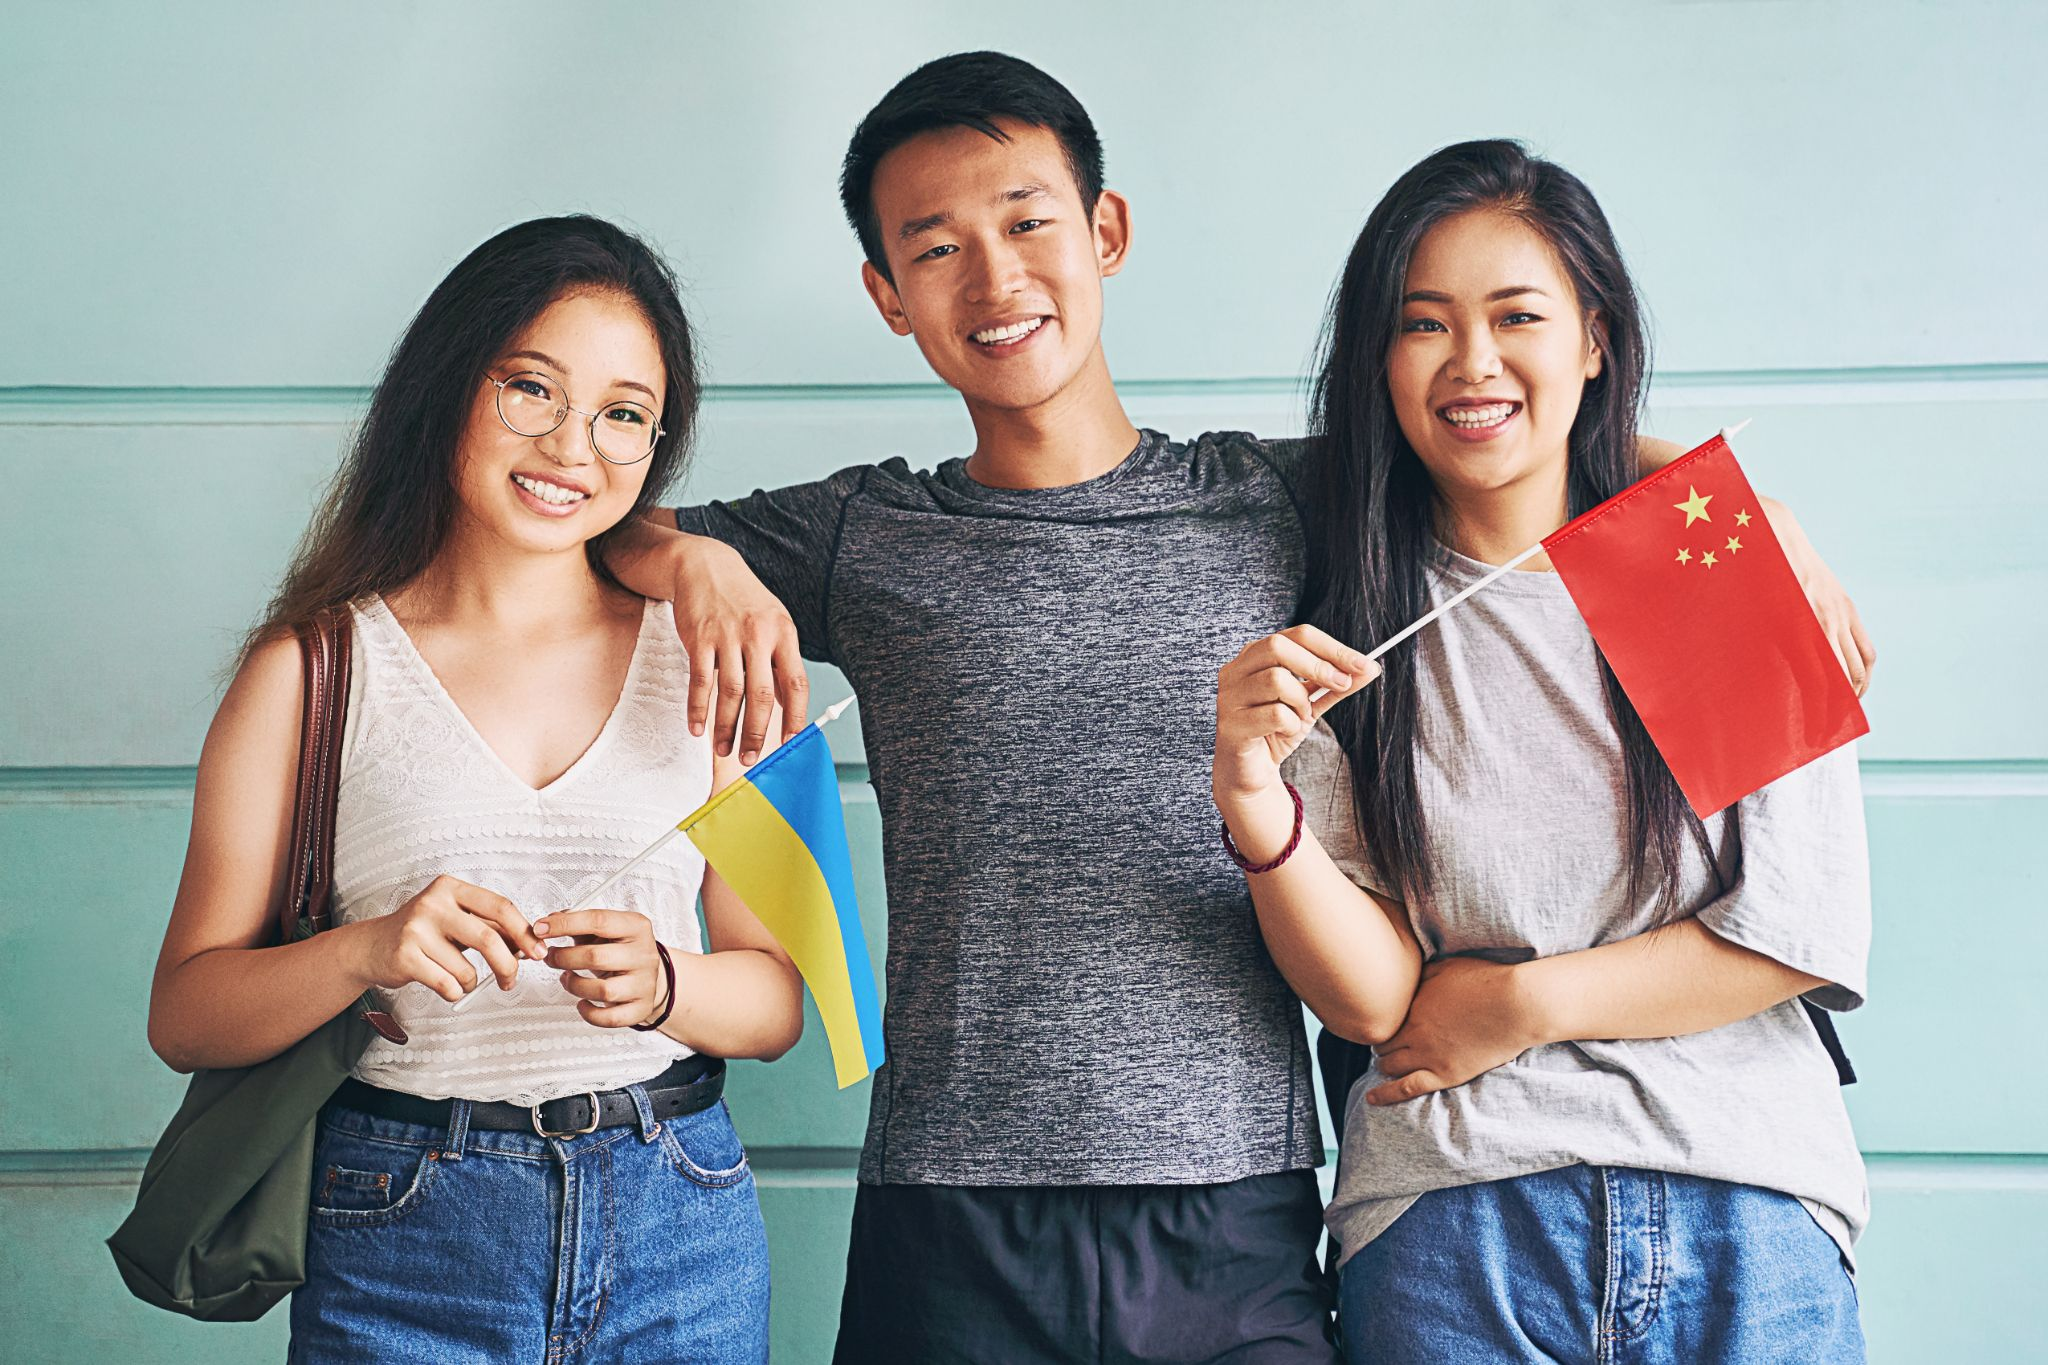 Group of three asian students smiling and holding flags of China and Ukraine